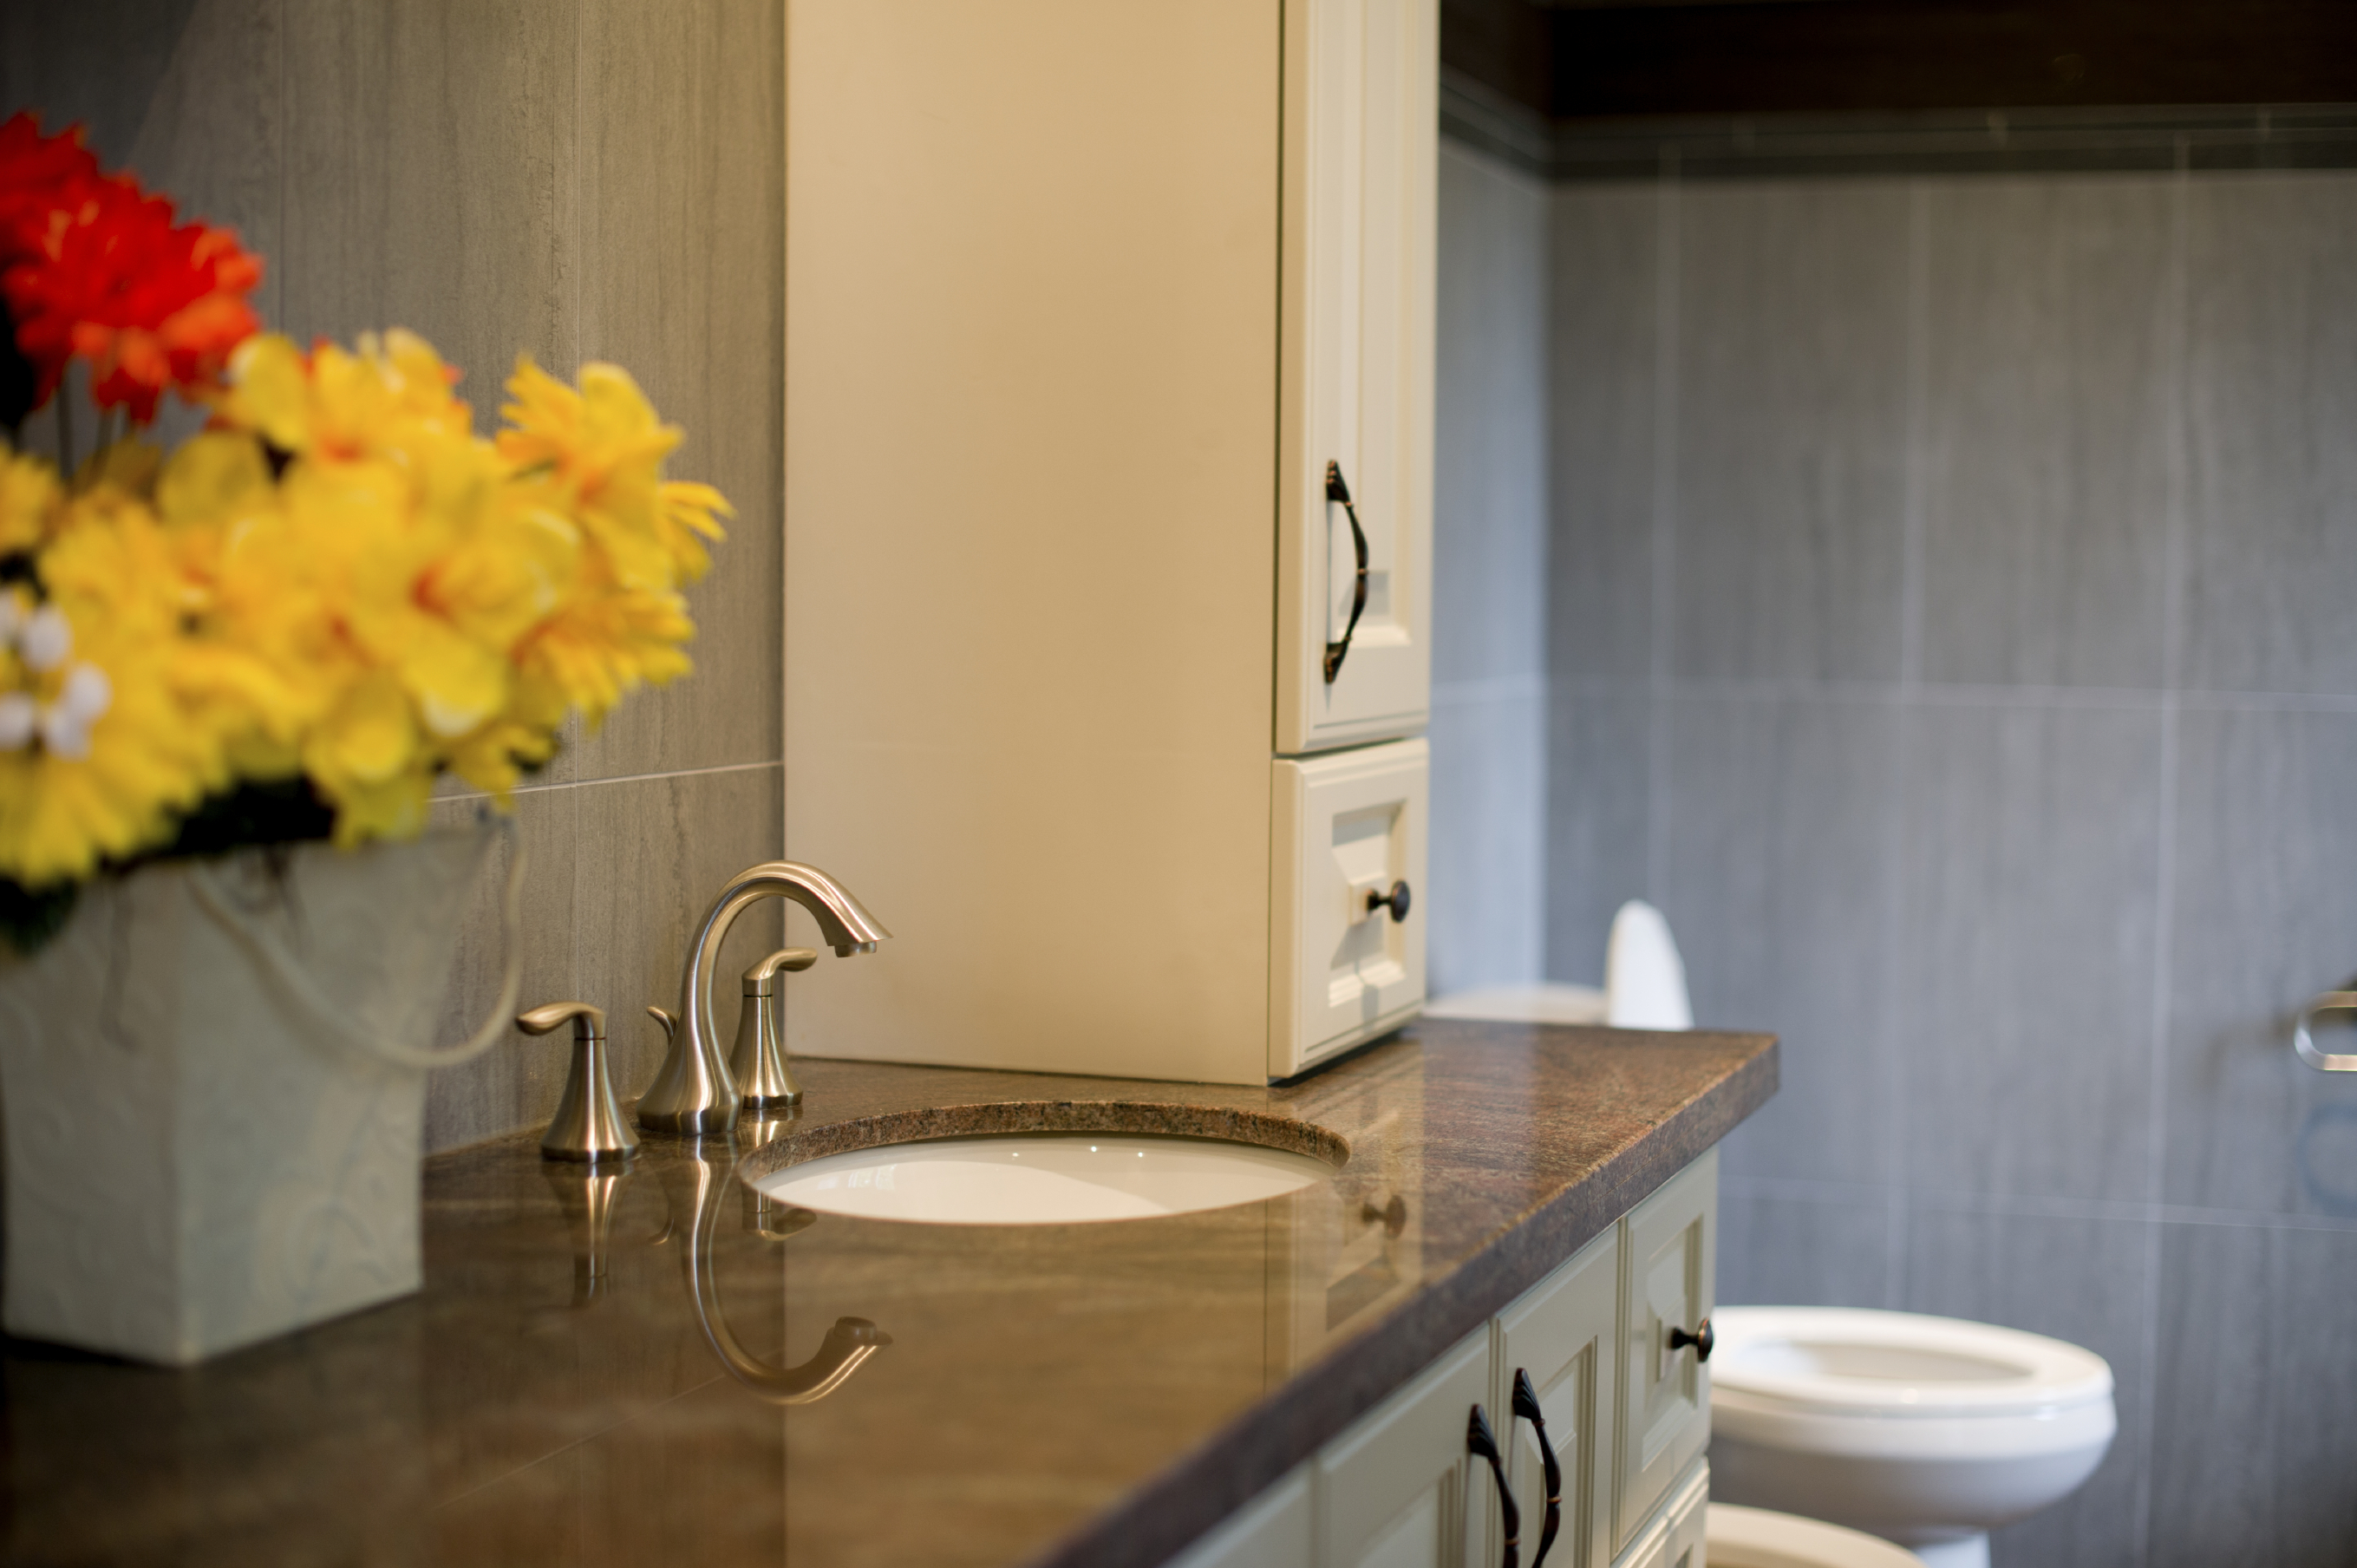 Areas Around The House With Excess Moisture Are Known To Attract Ants So Bathrooms Highly Susceptible An Infestation Carpenter For Example